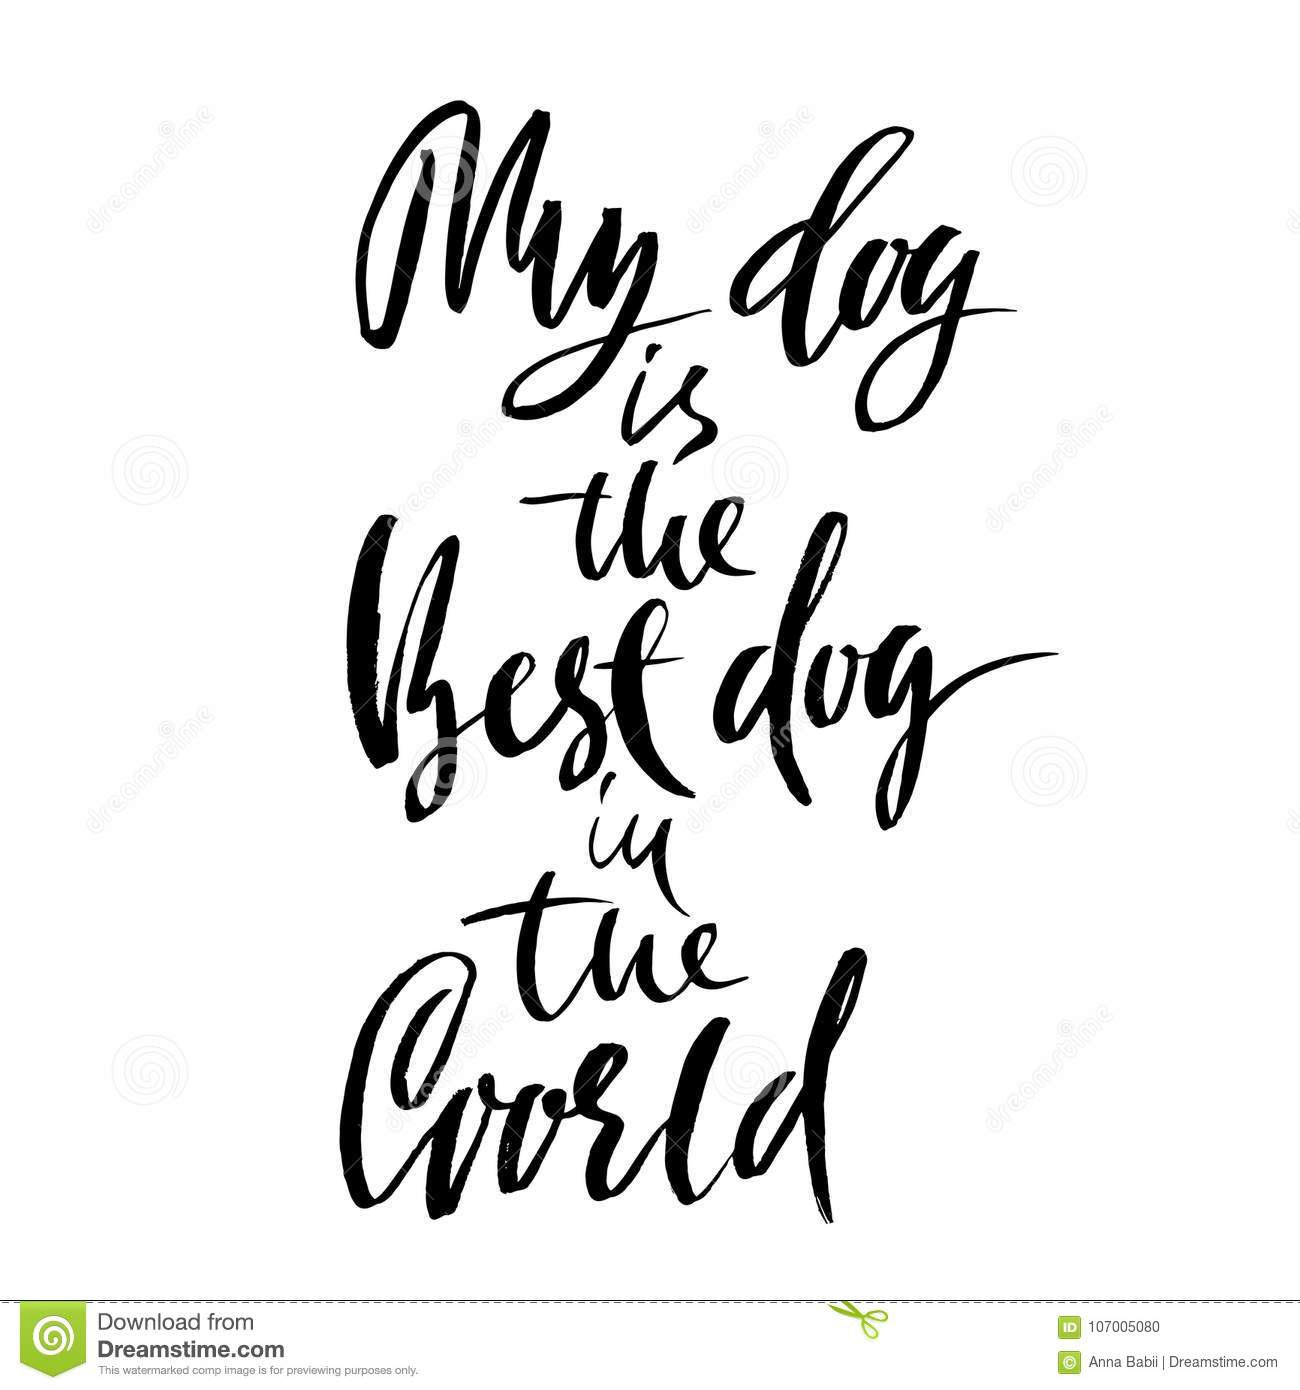 My dog is the best dog in the world hand drawn dry brush lettering